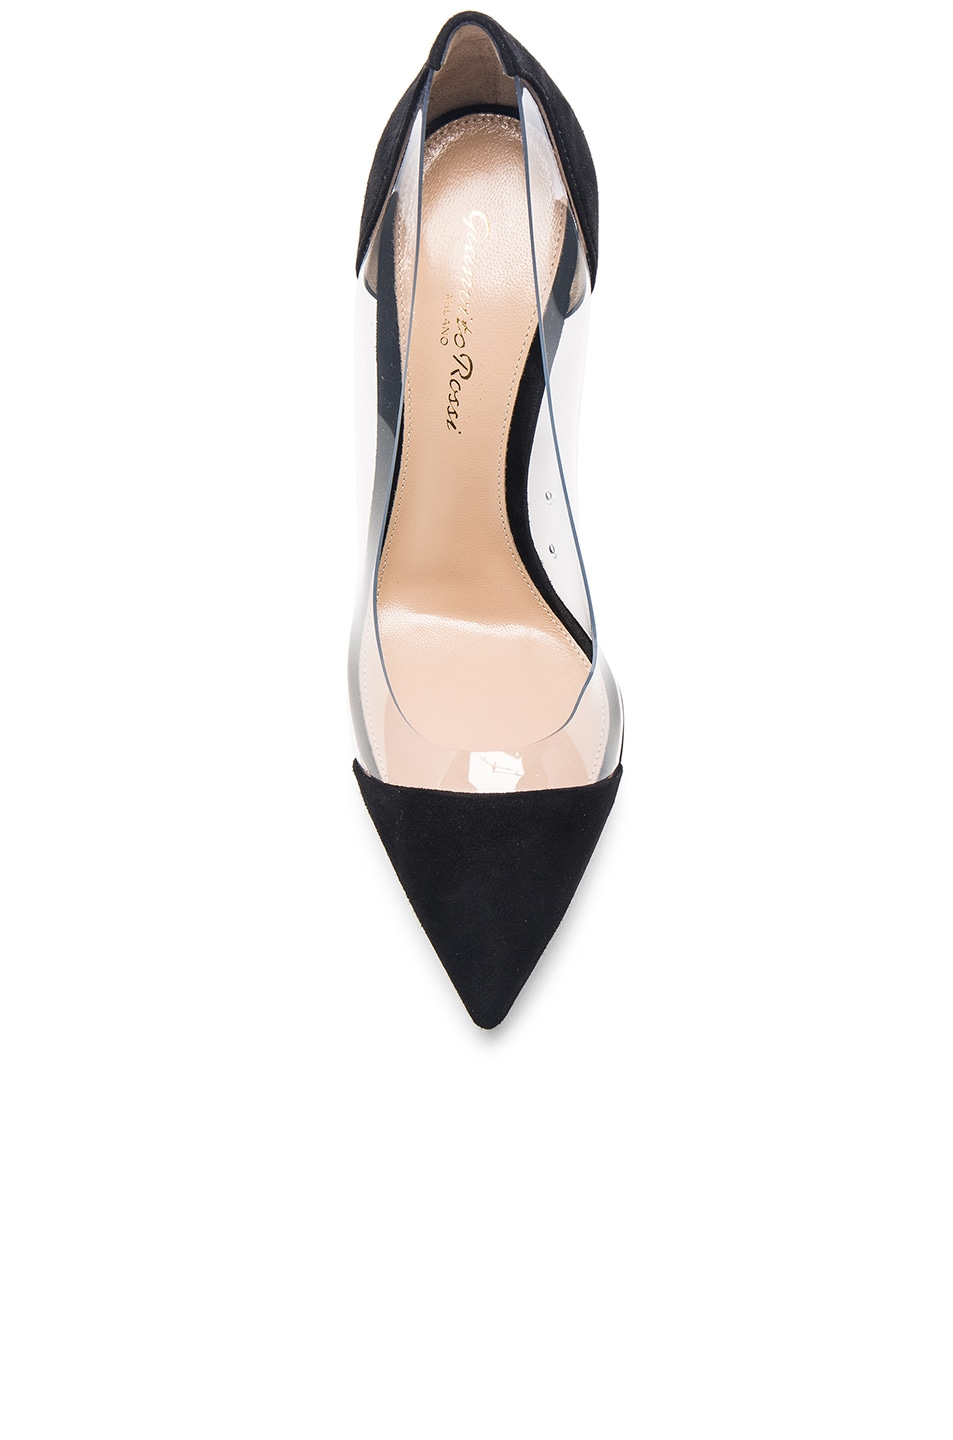 Image 4 of Gianvito Rossi Suede Plexi Pumps in Black